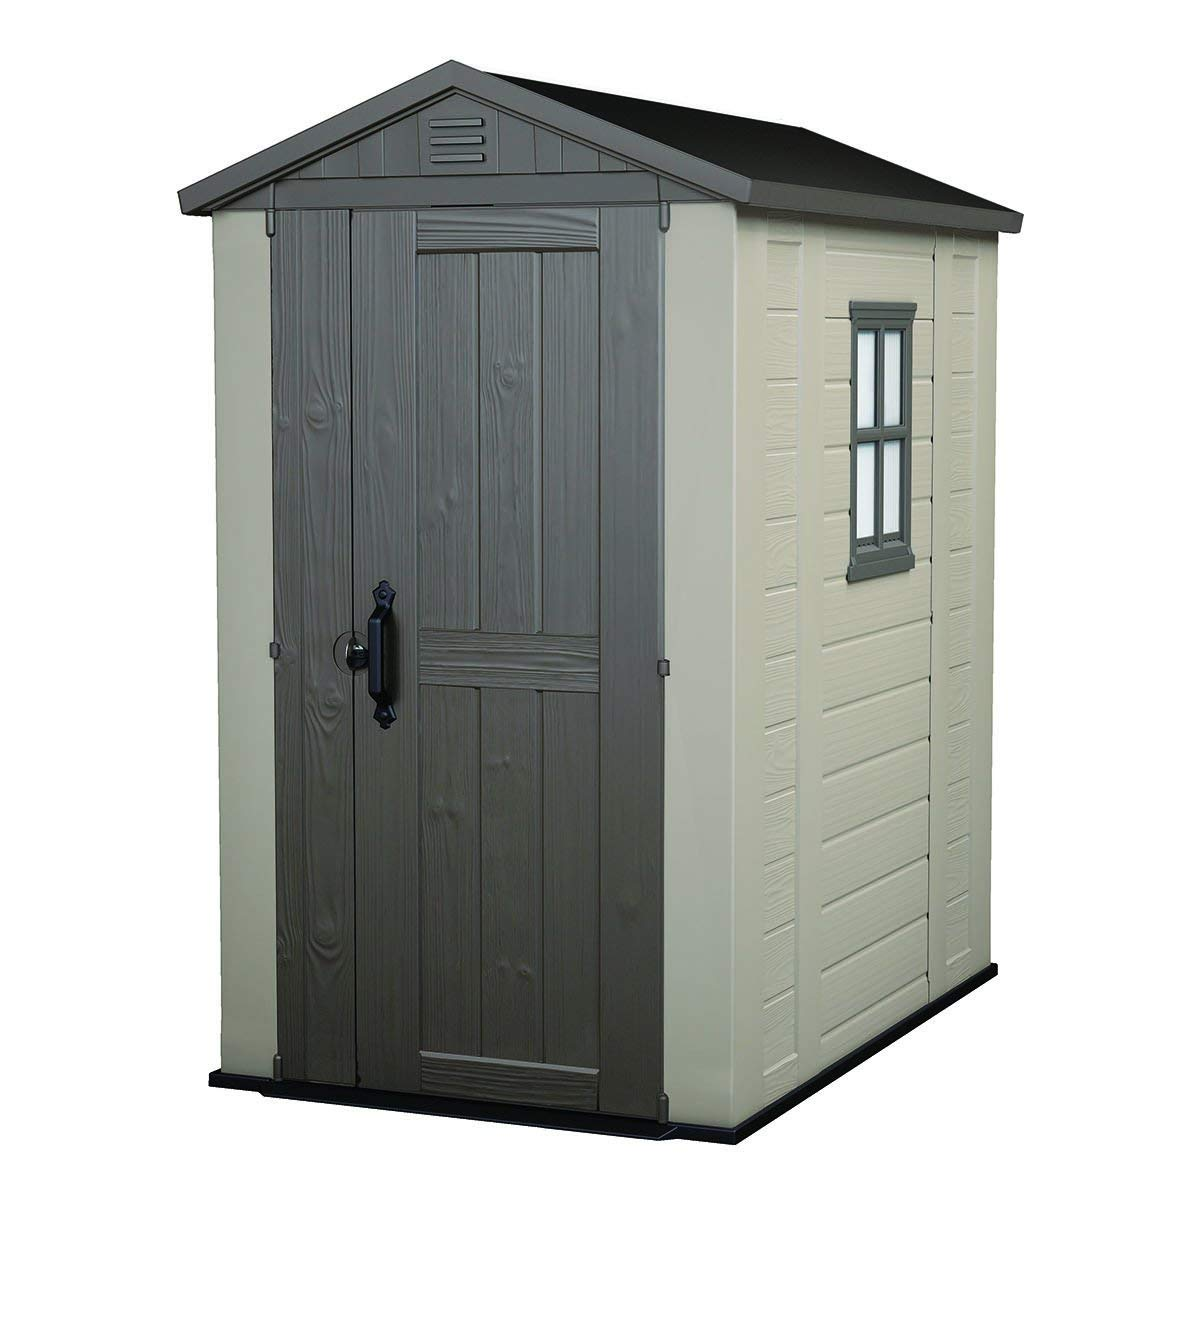 Keter Factor Large Resin Outdoor Backyard Storage Shed